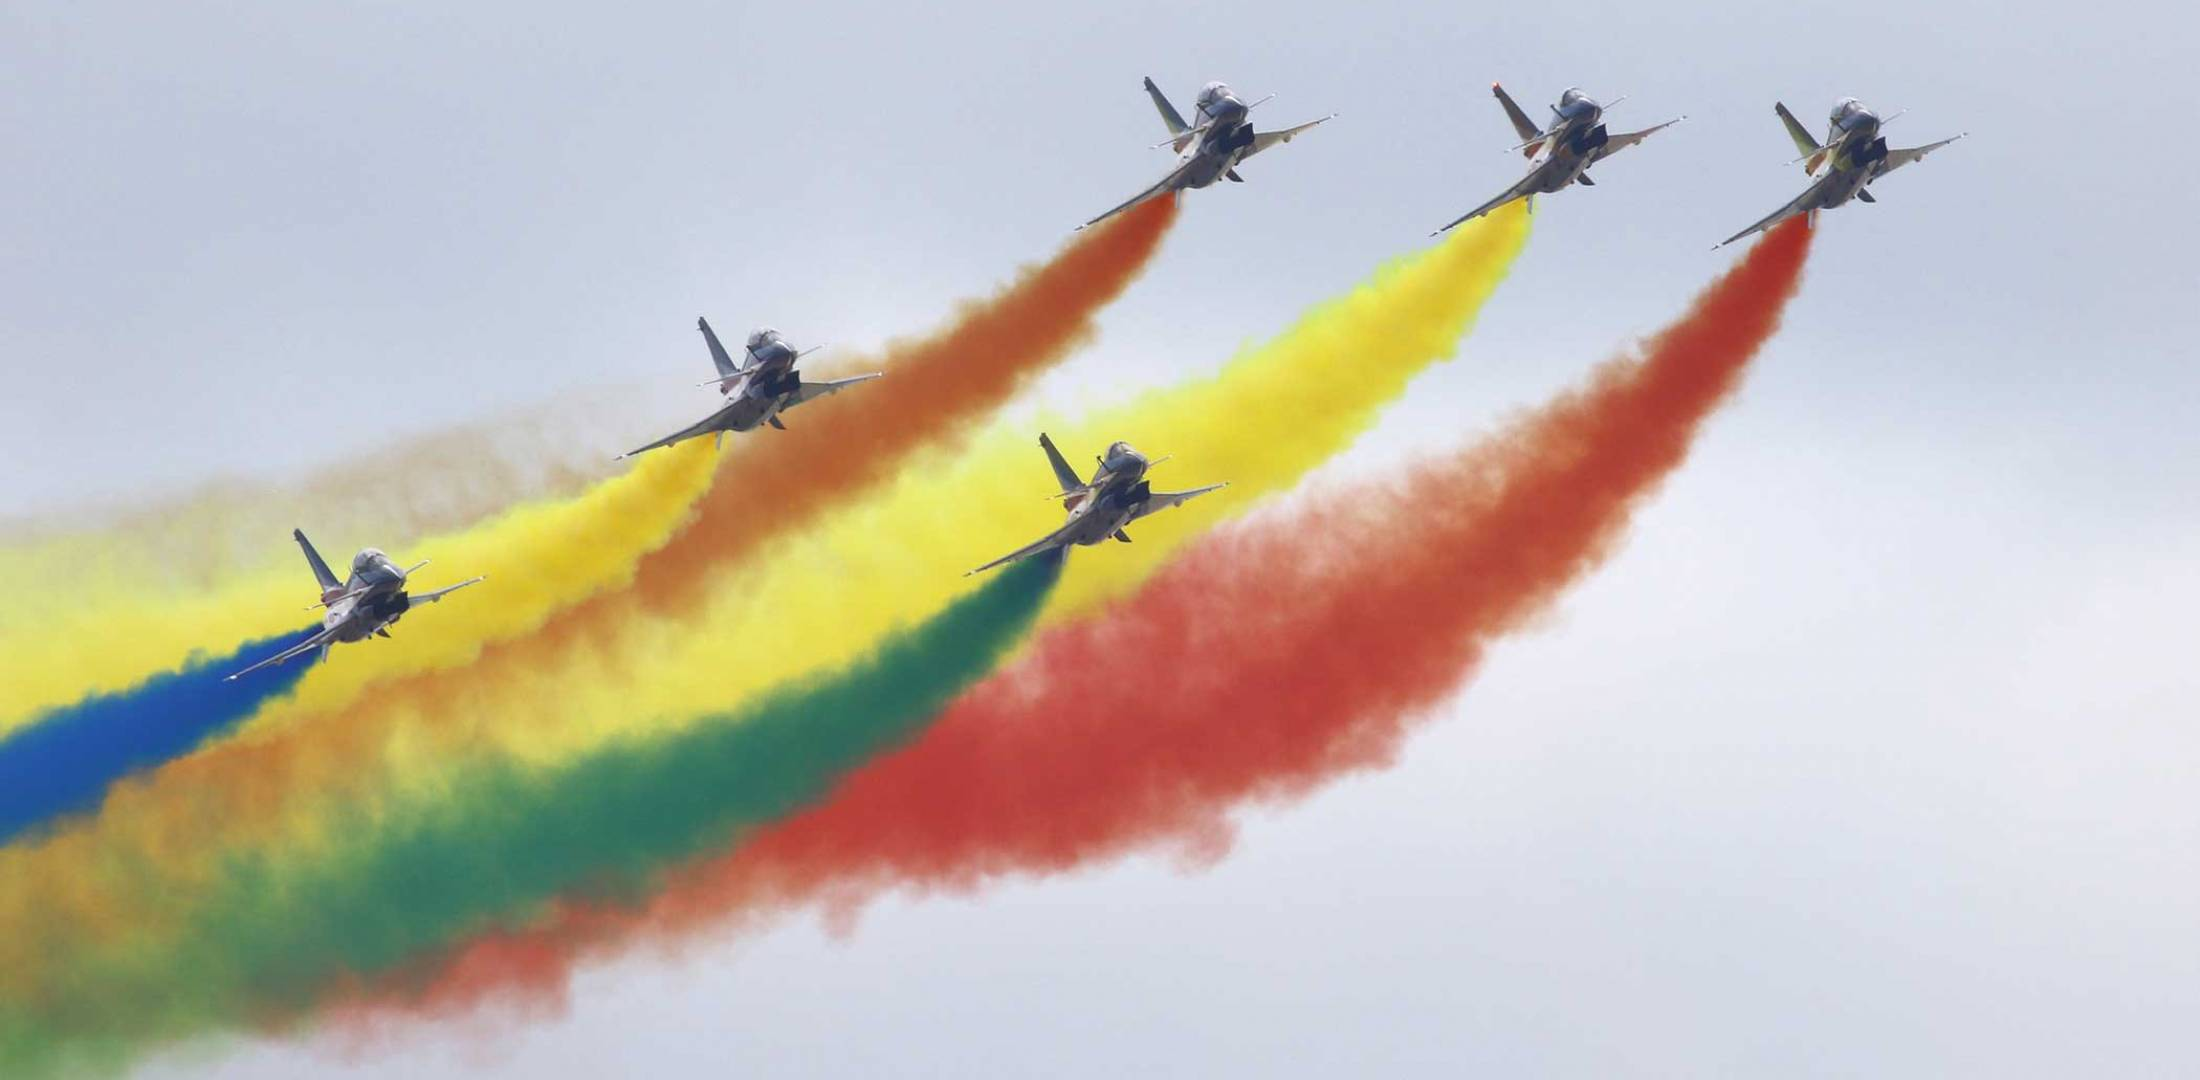 Scaled-back Singapore Airshow 2020 Opens | Air Transport News ...